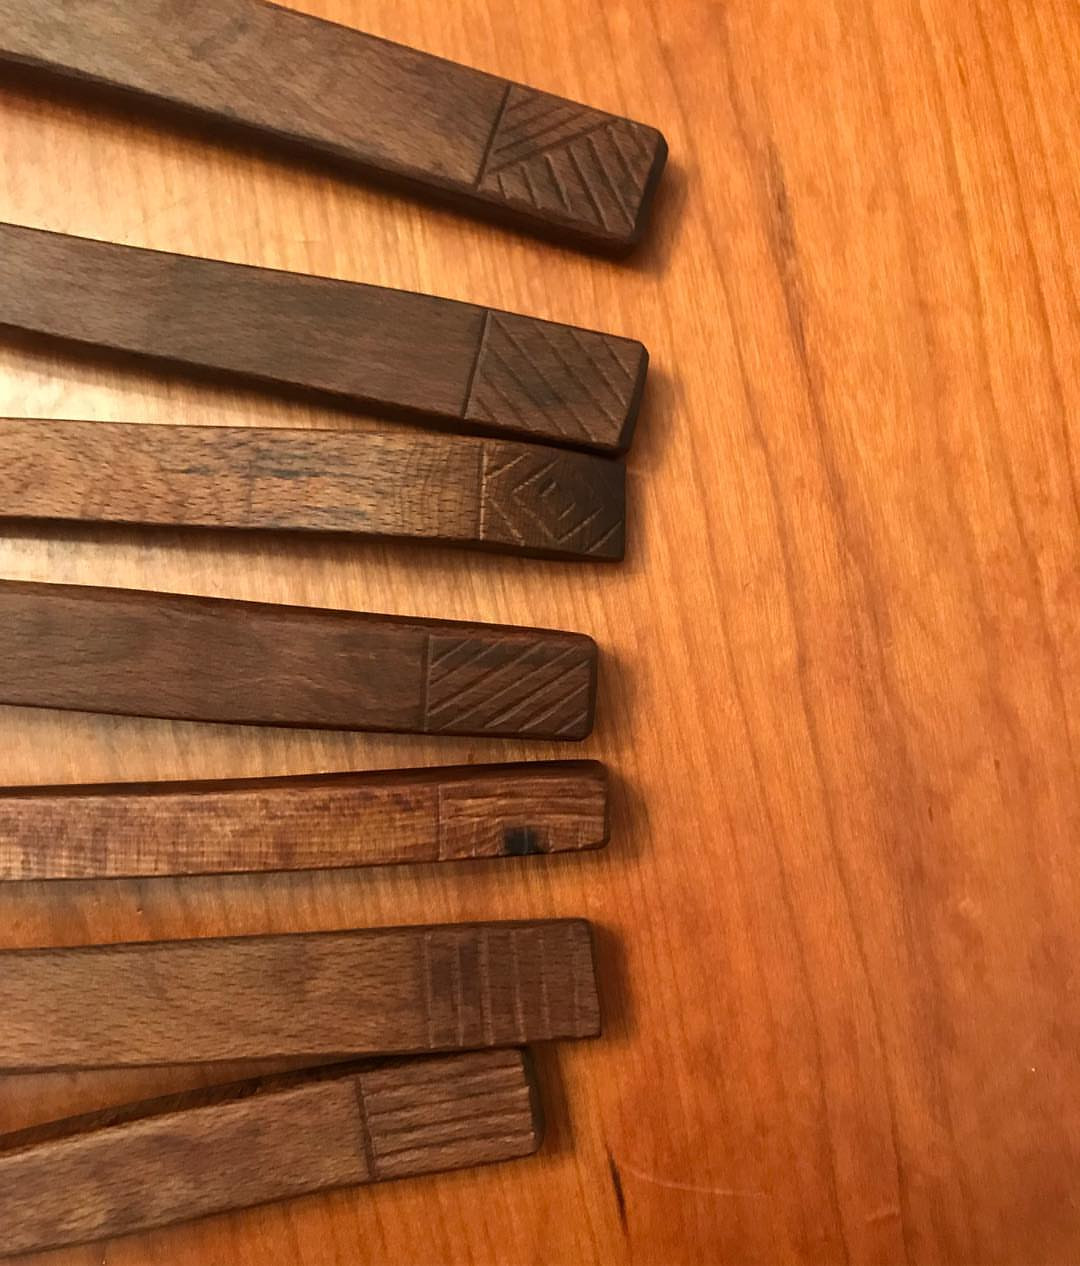 Hardwood Floor Refinishing Lexington Ky Of A–· Woodenbowl Instagram Hashtag Photos Videos • Piktag Pertaining to Mattpday Close Up Of the Handles From that Set I Carved A Different